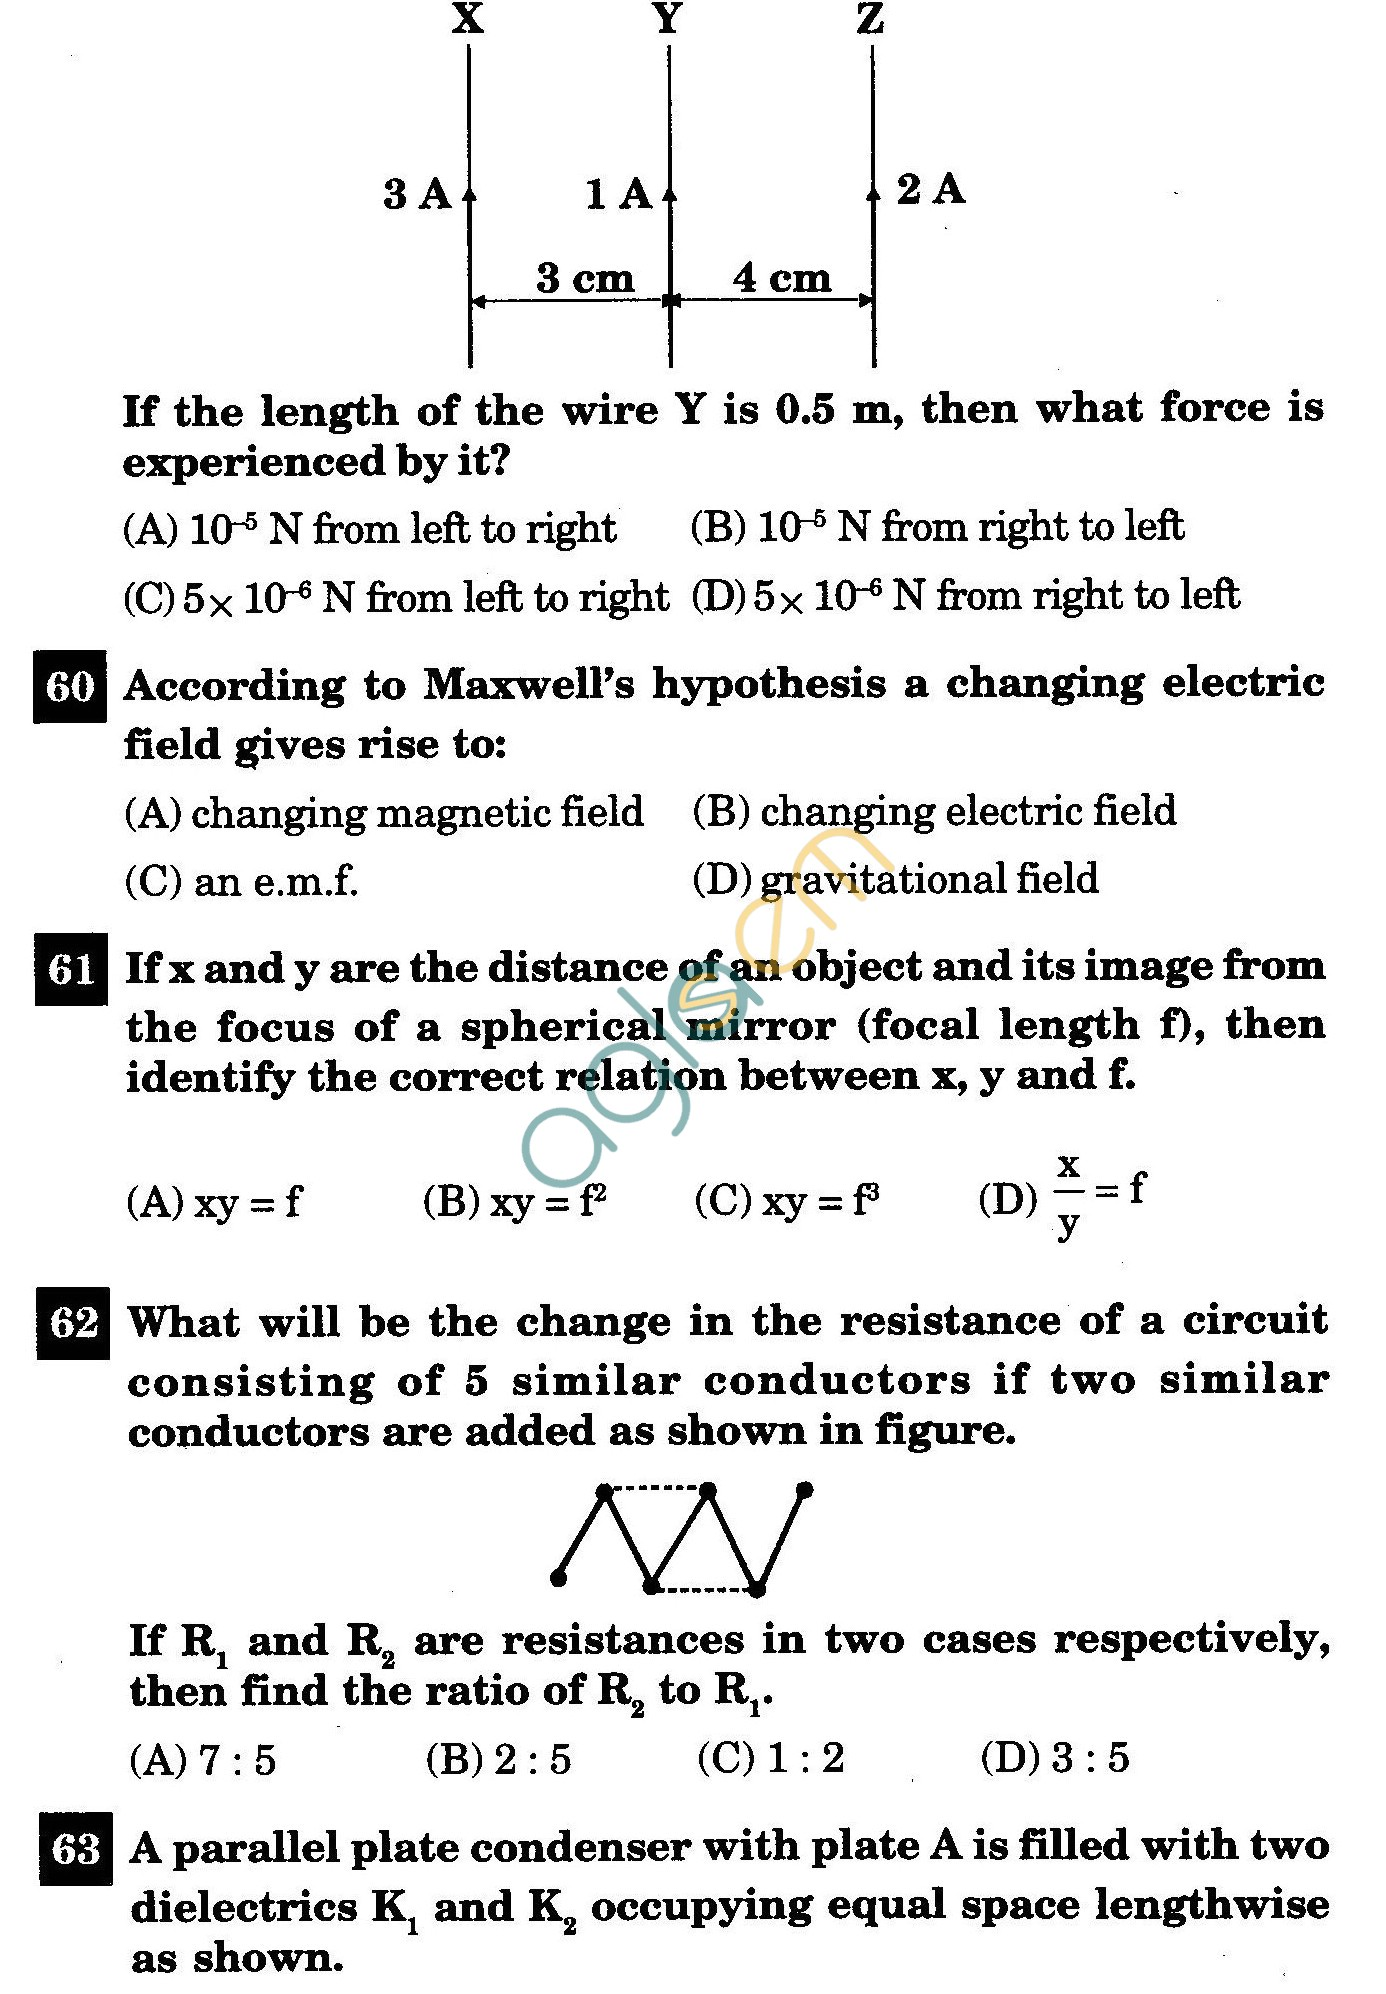 NSTSE 2011 Class XII PCM Question Paper with Answers - Physics